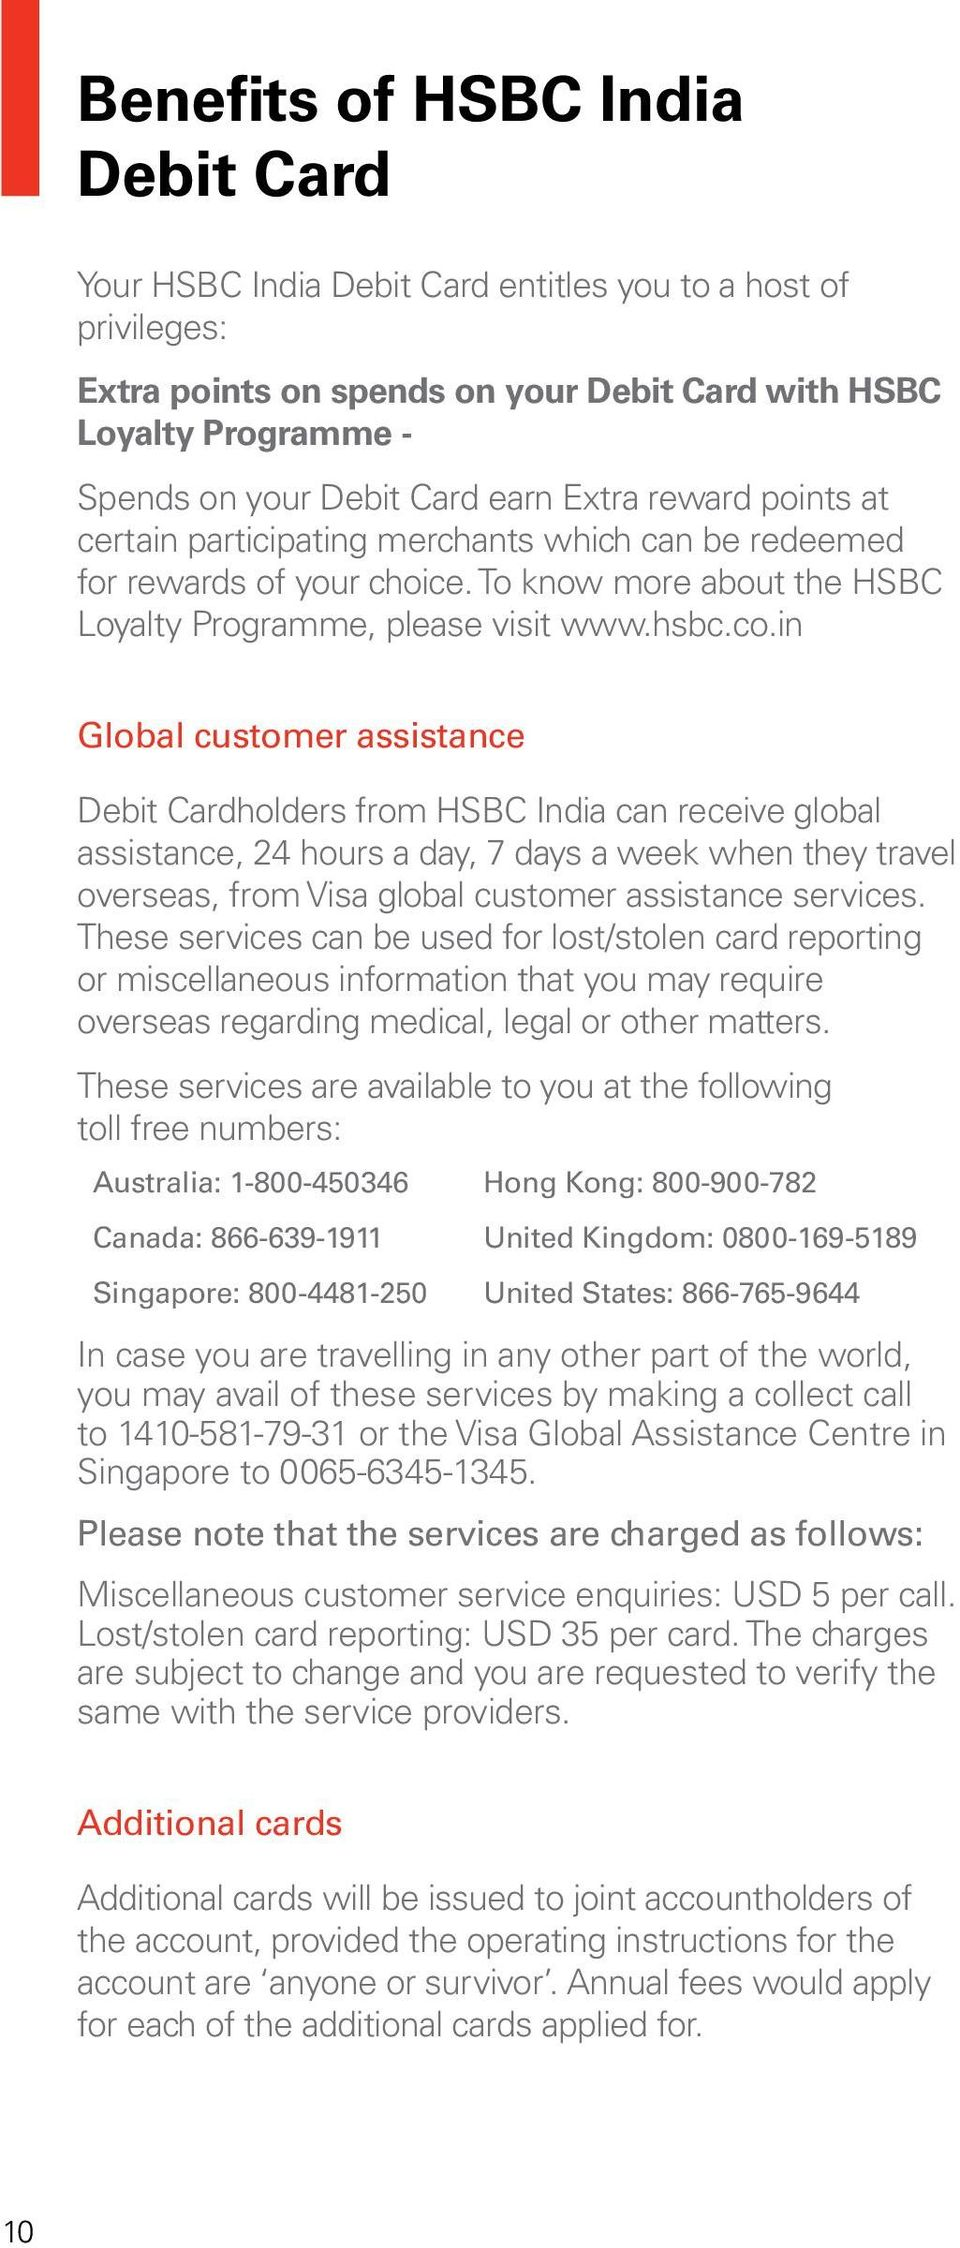 HSBC India Debit Card for Personal Banking and Basic Savings Bank